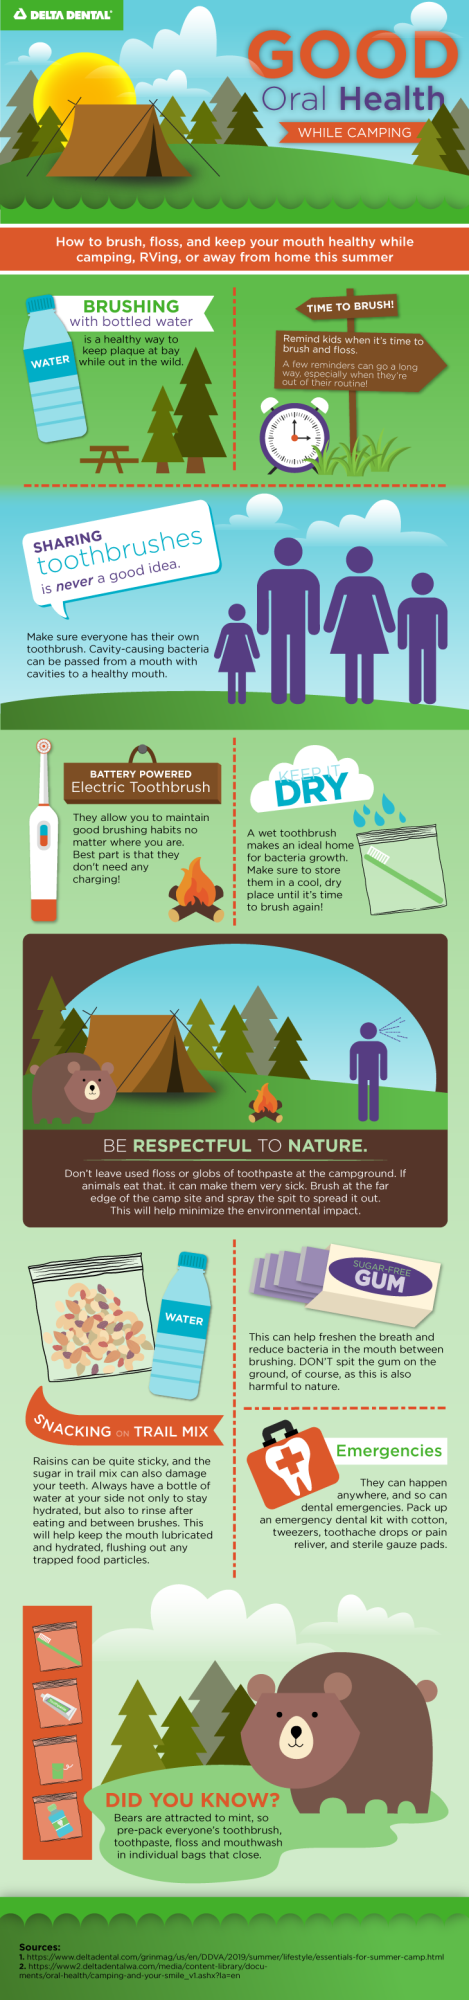 Maintain a healthy mouth while camping with our outdoor oral health tips.